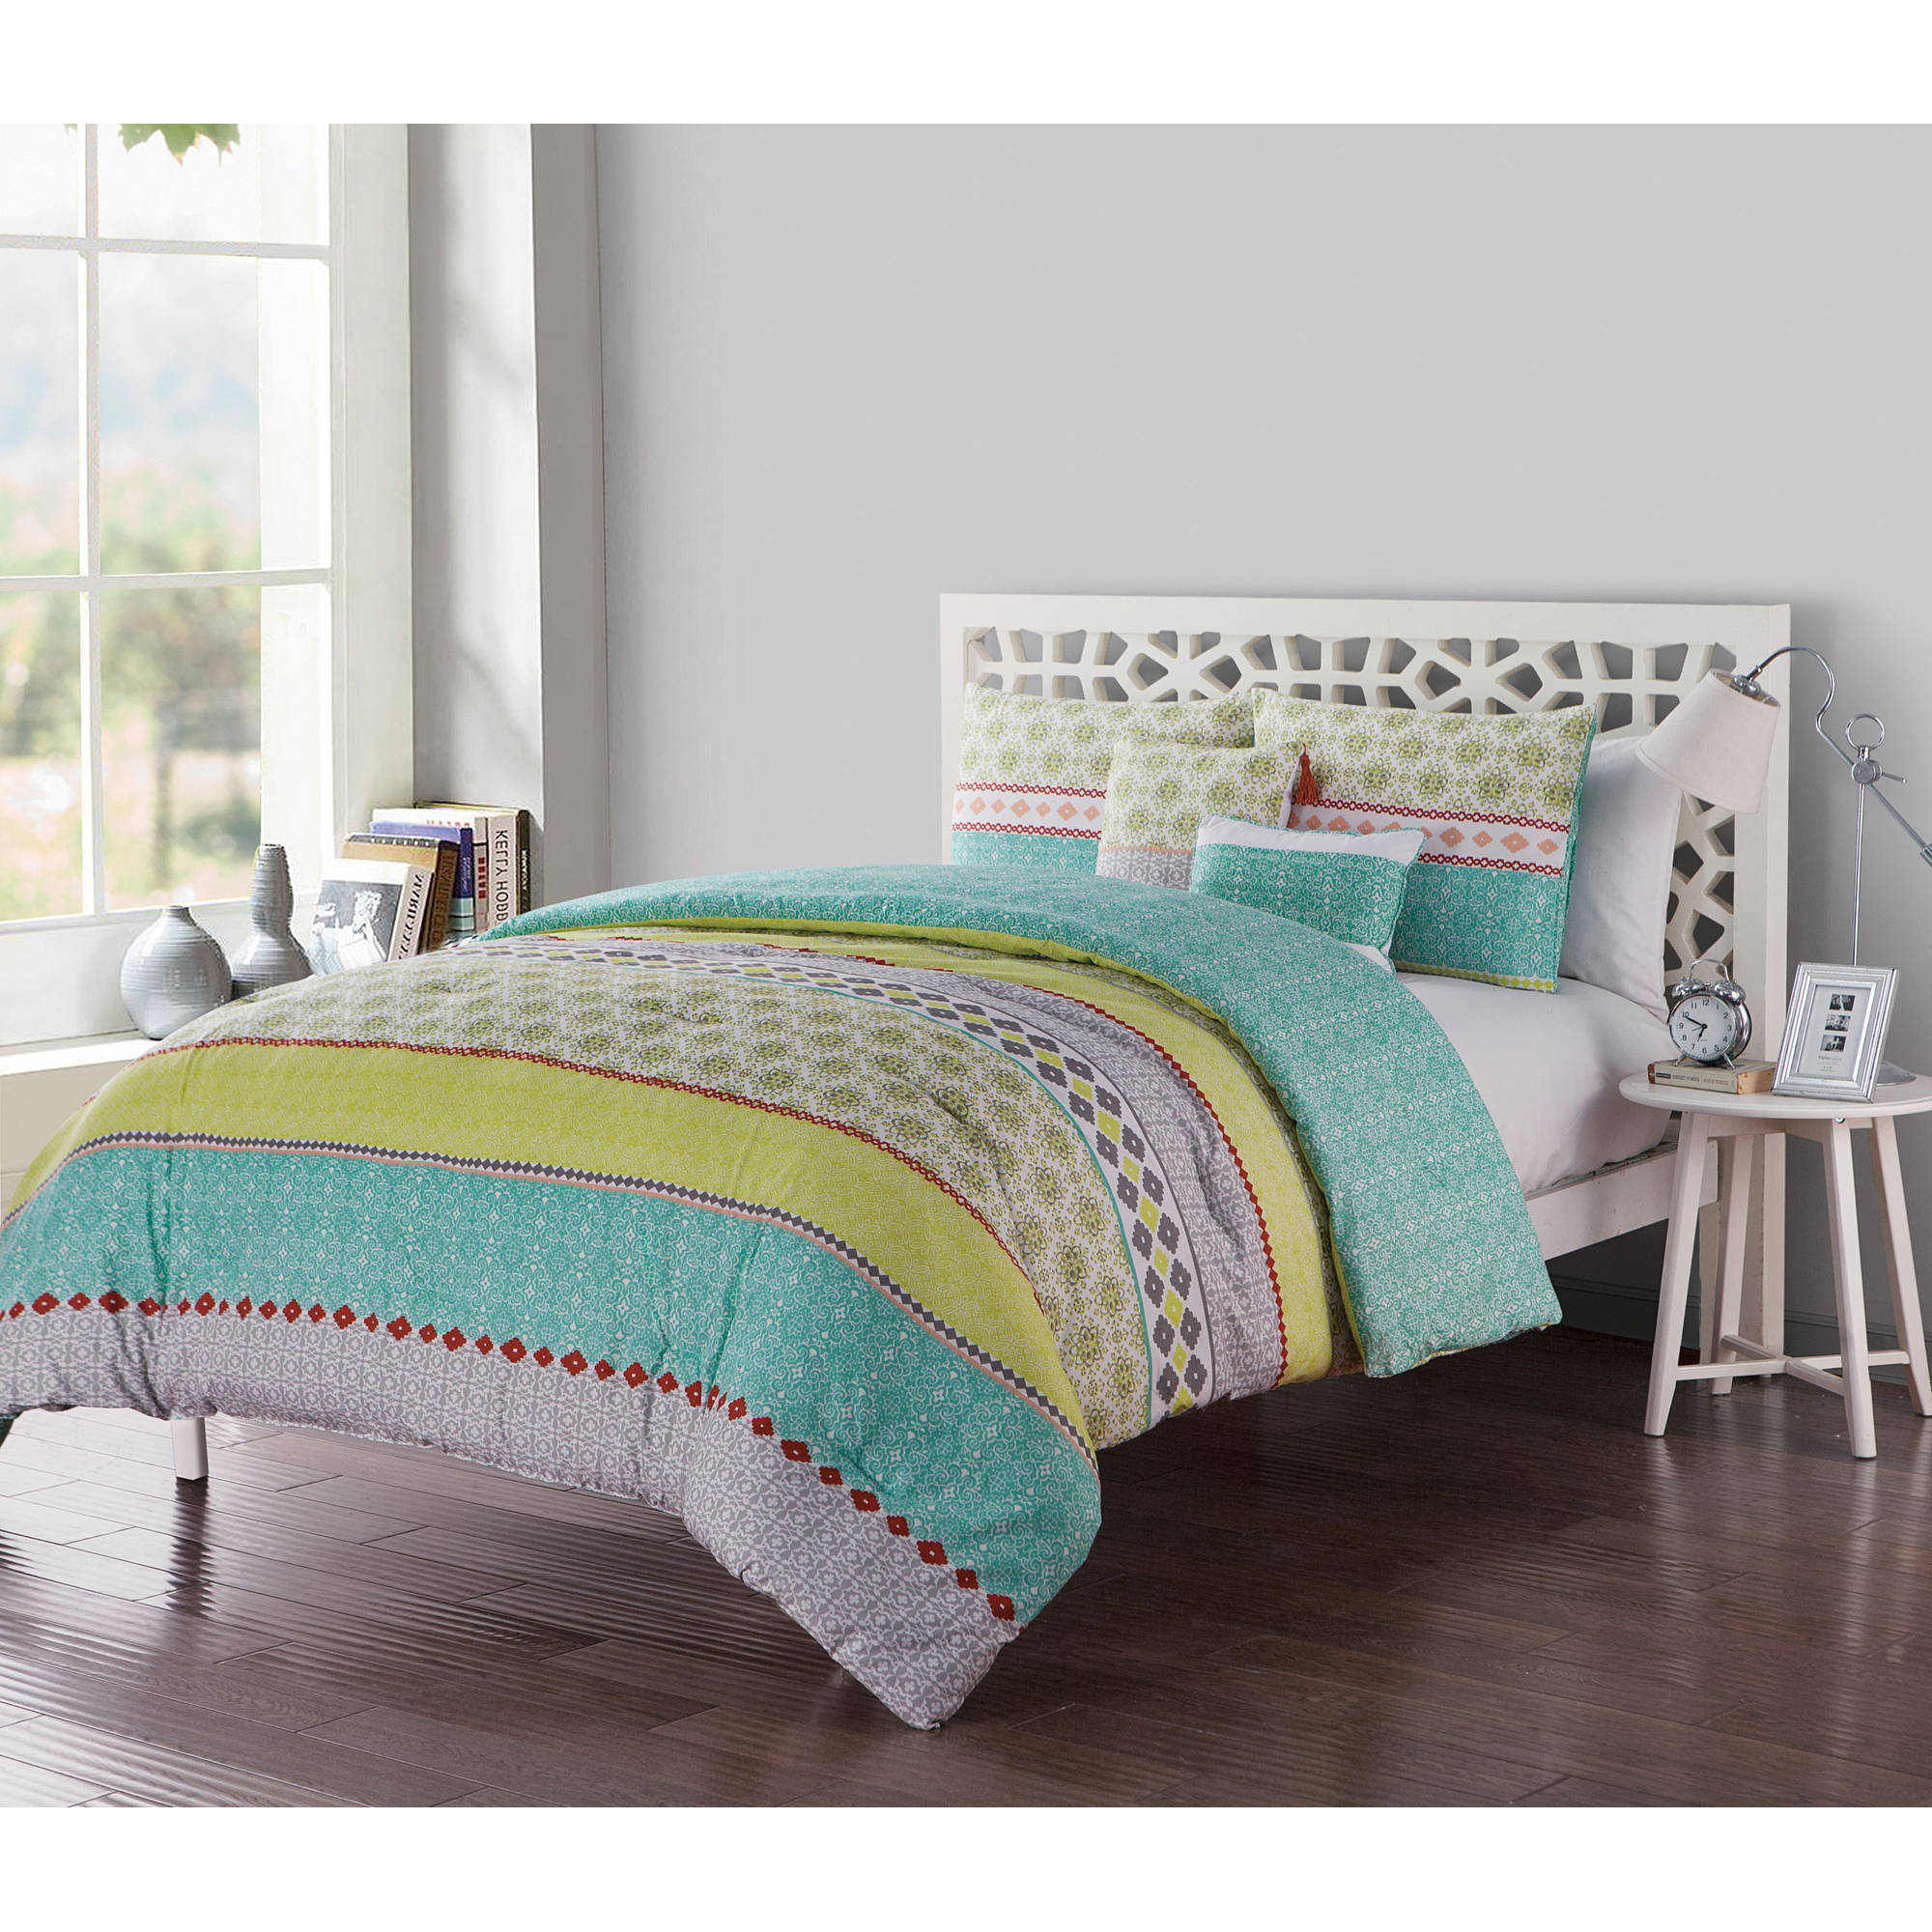 VCNY Home Multi-Color Geometric Printed 4/5 Piece Dharma Embellished Reversible Bedding Comforter Set, Decorative Pillows and Shams Included